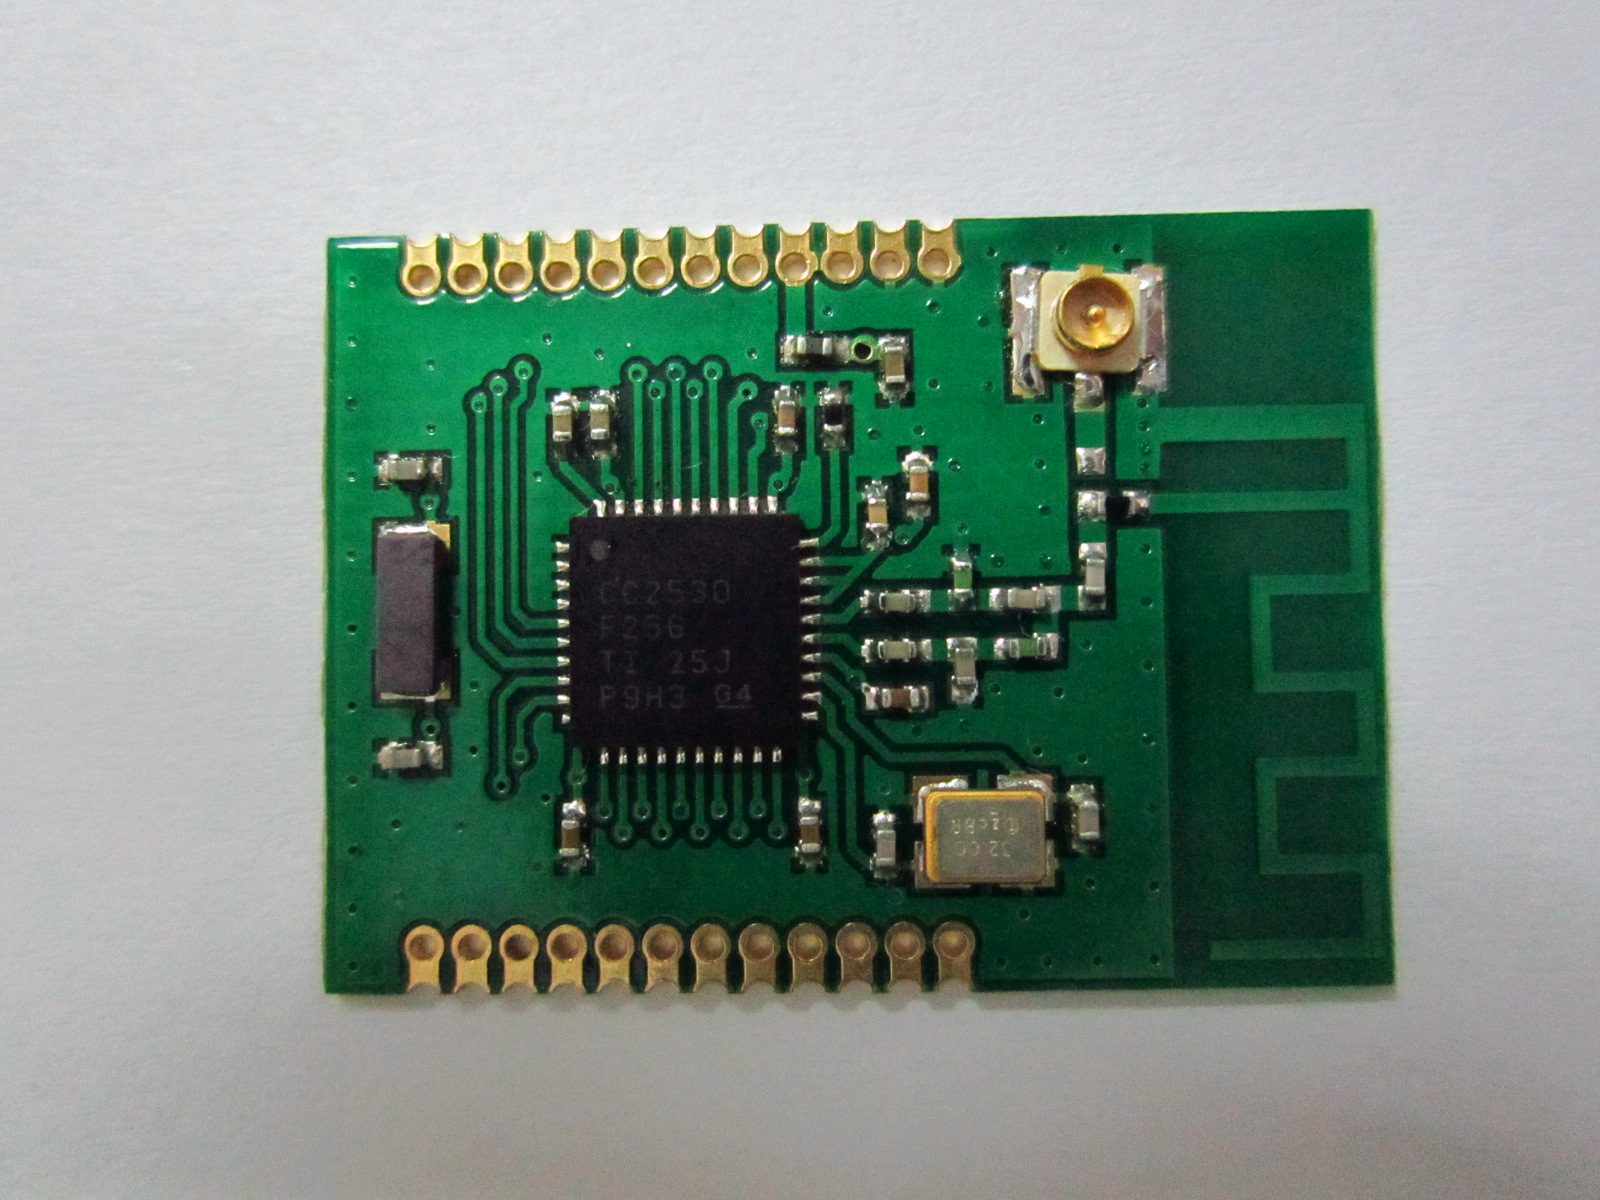 CC2530 module SZ1Zigbee module industry the highest price stability and reliability ripudaman singh bhupinder singh bhalla and amandeep kaur the hospitality industry